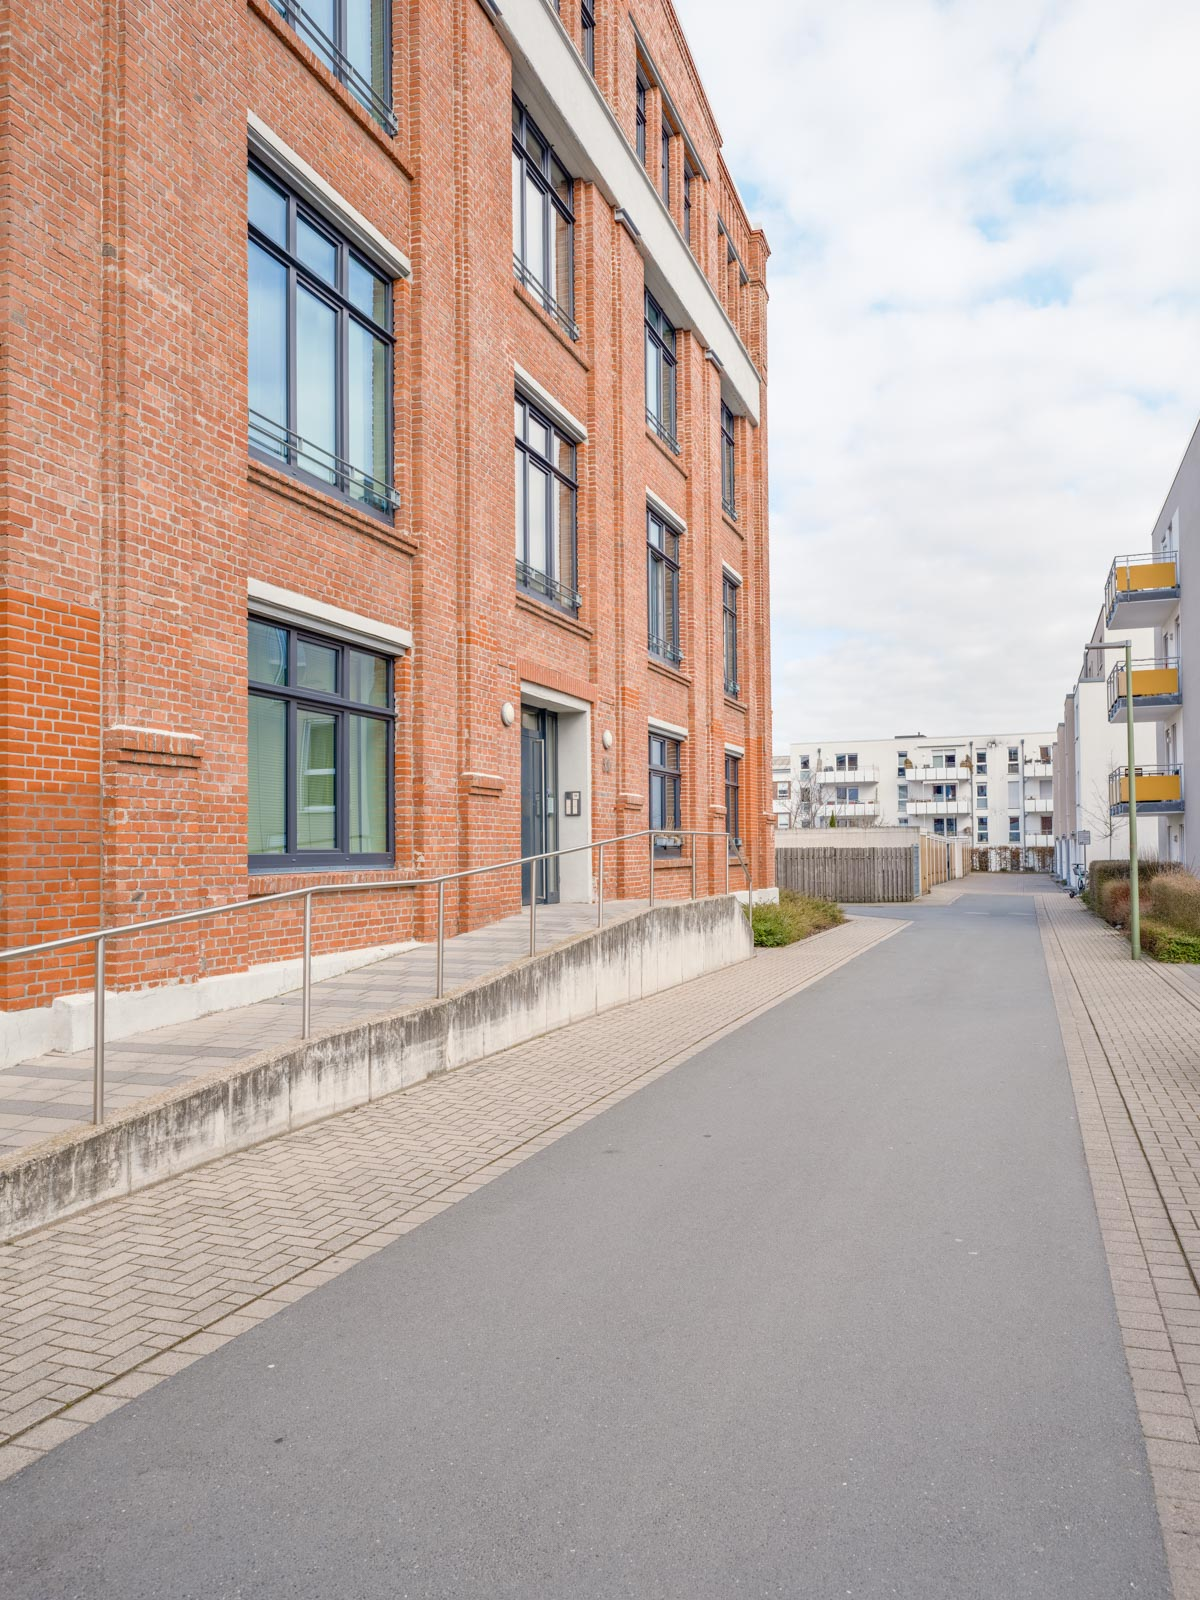 Side street in a newly built residential area in March 2021 (Bielefeld, Germany).